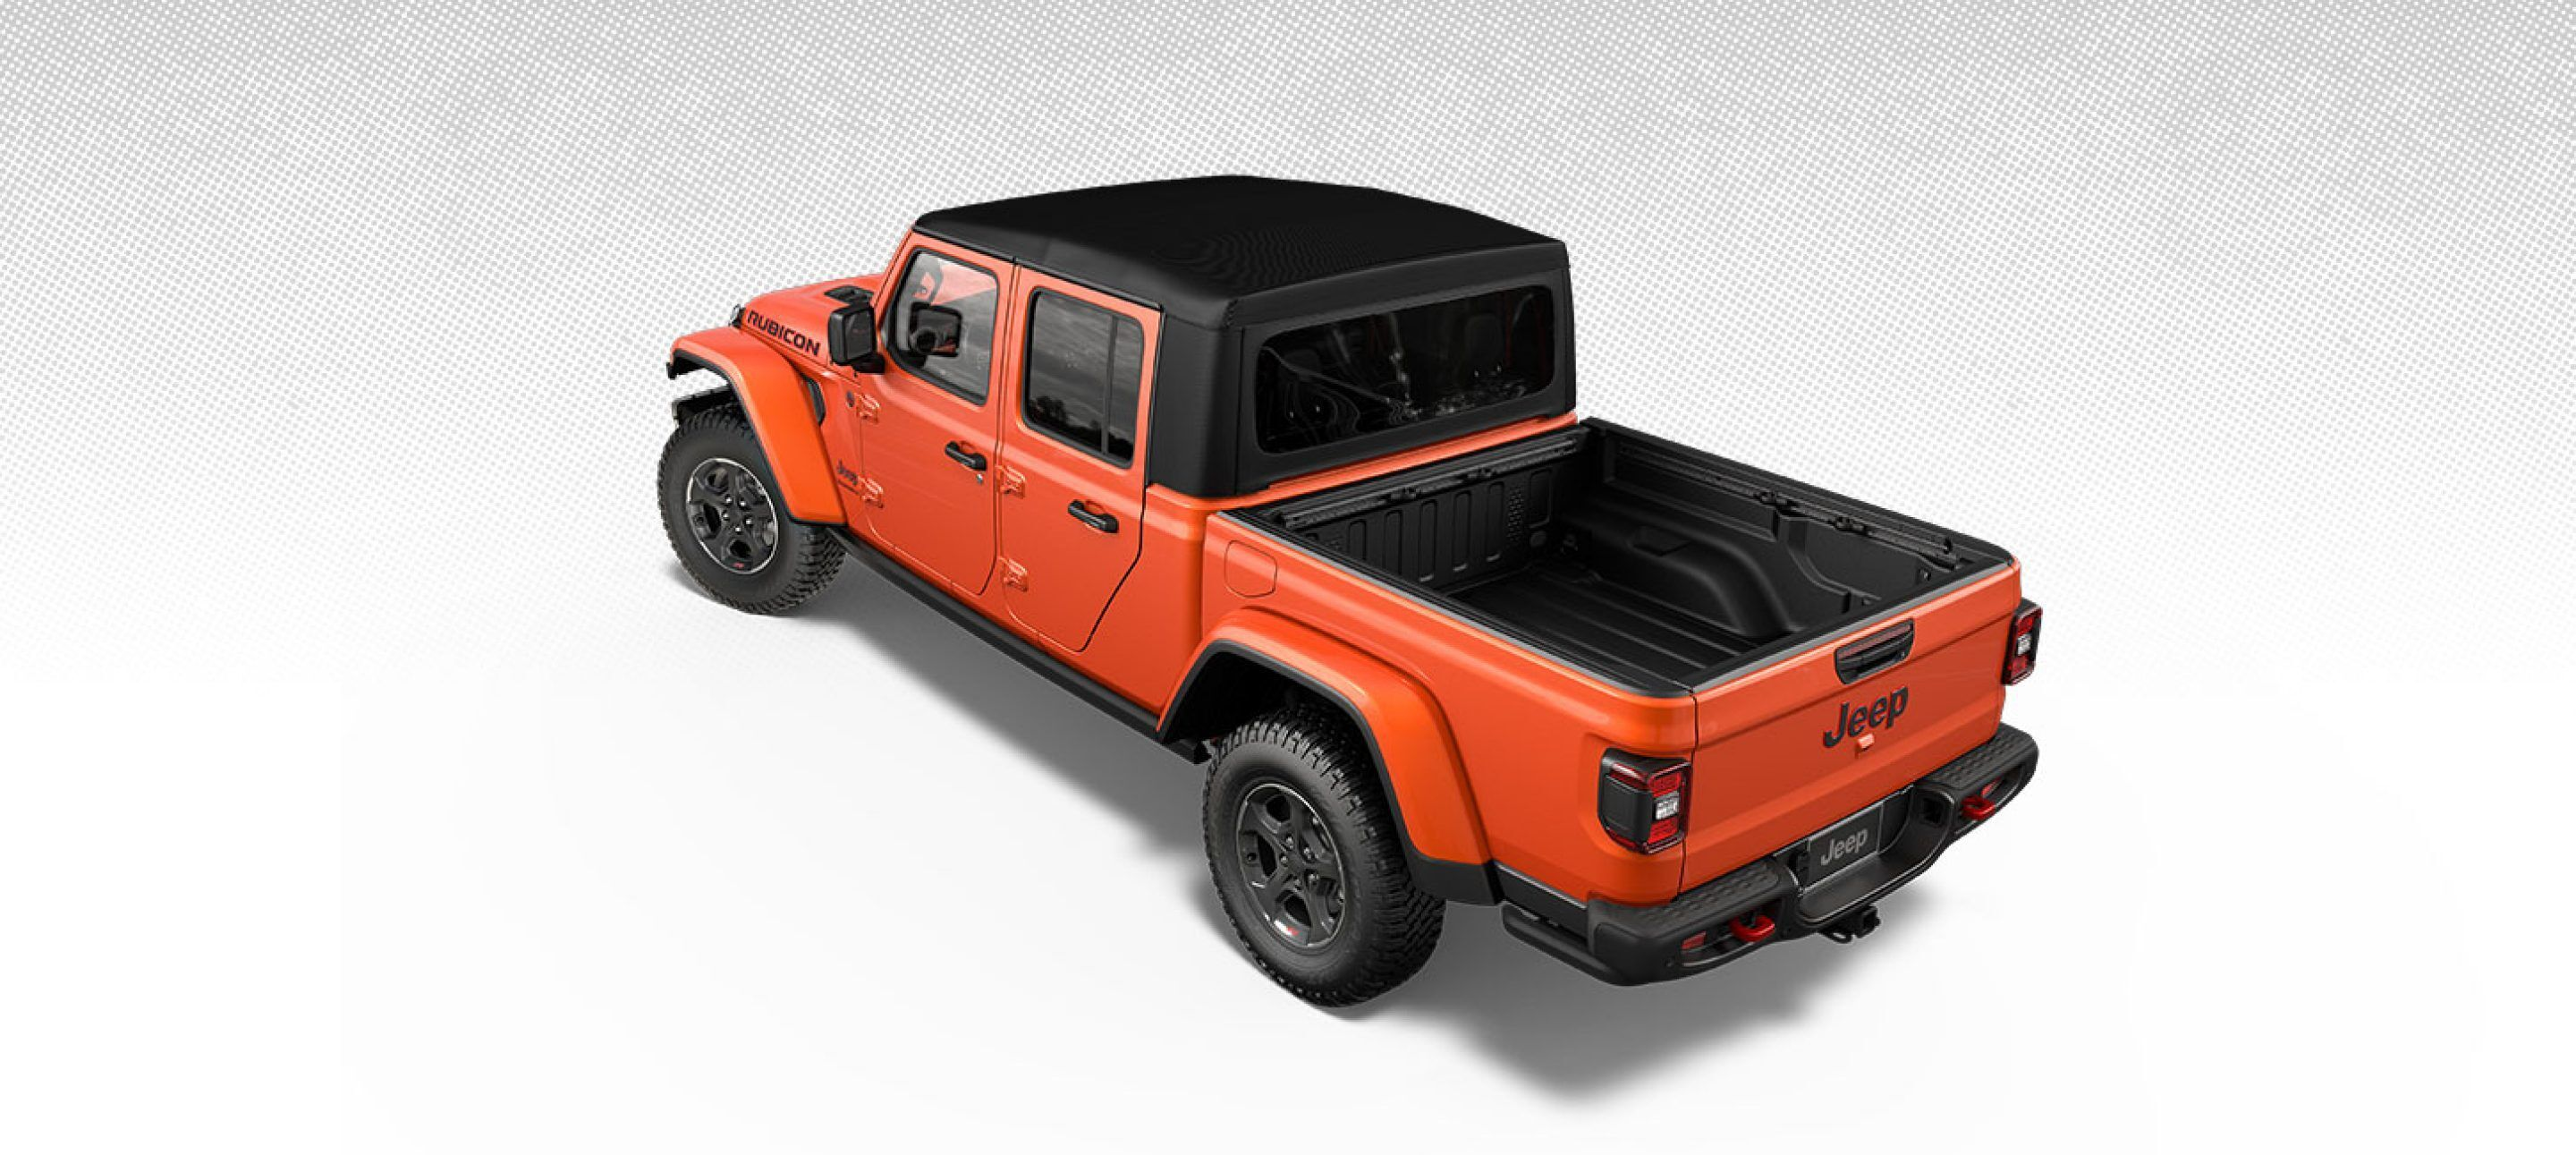 2020-Jeep-Gladiator-Exterior-Top-And-Doors-Soft-Top.jpg.image.2880.jpg